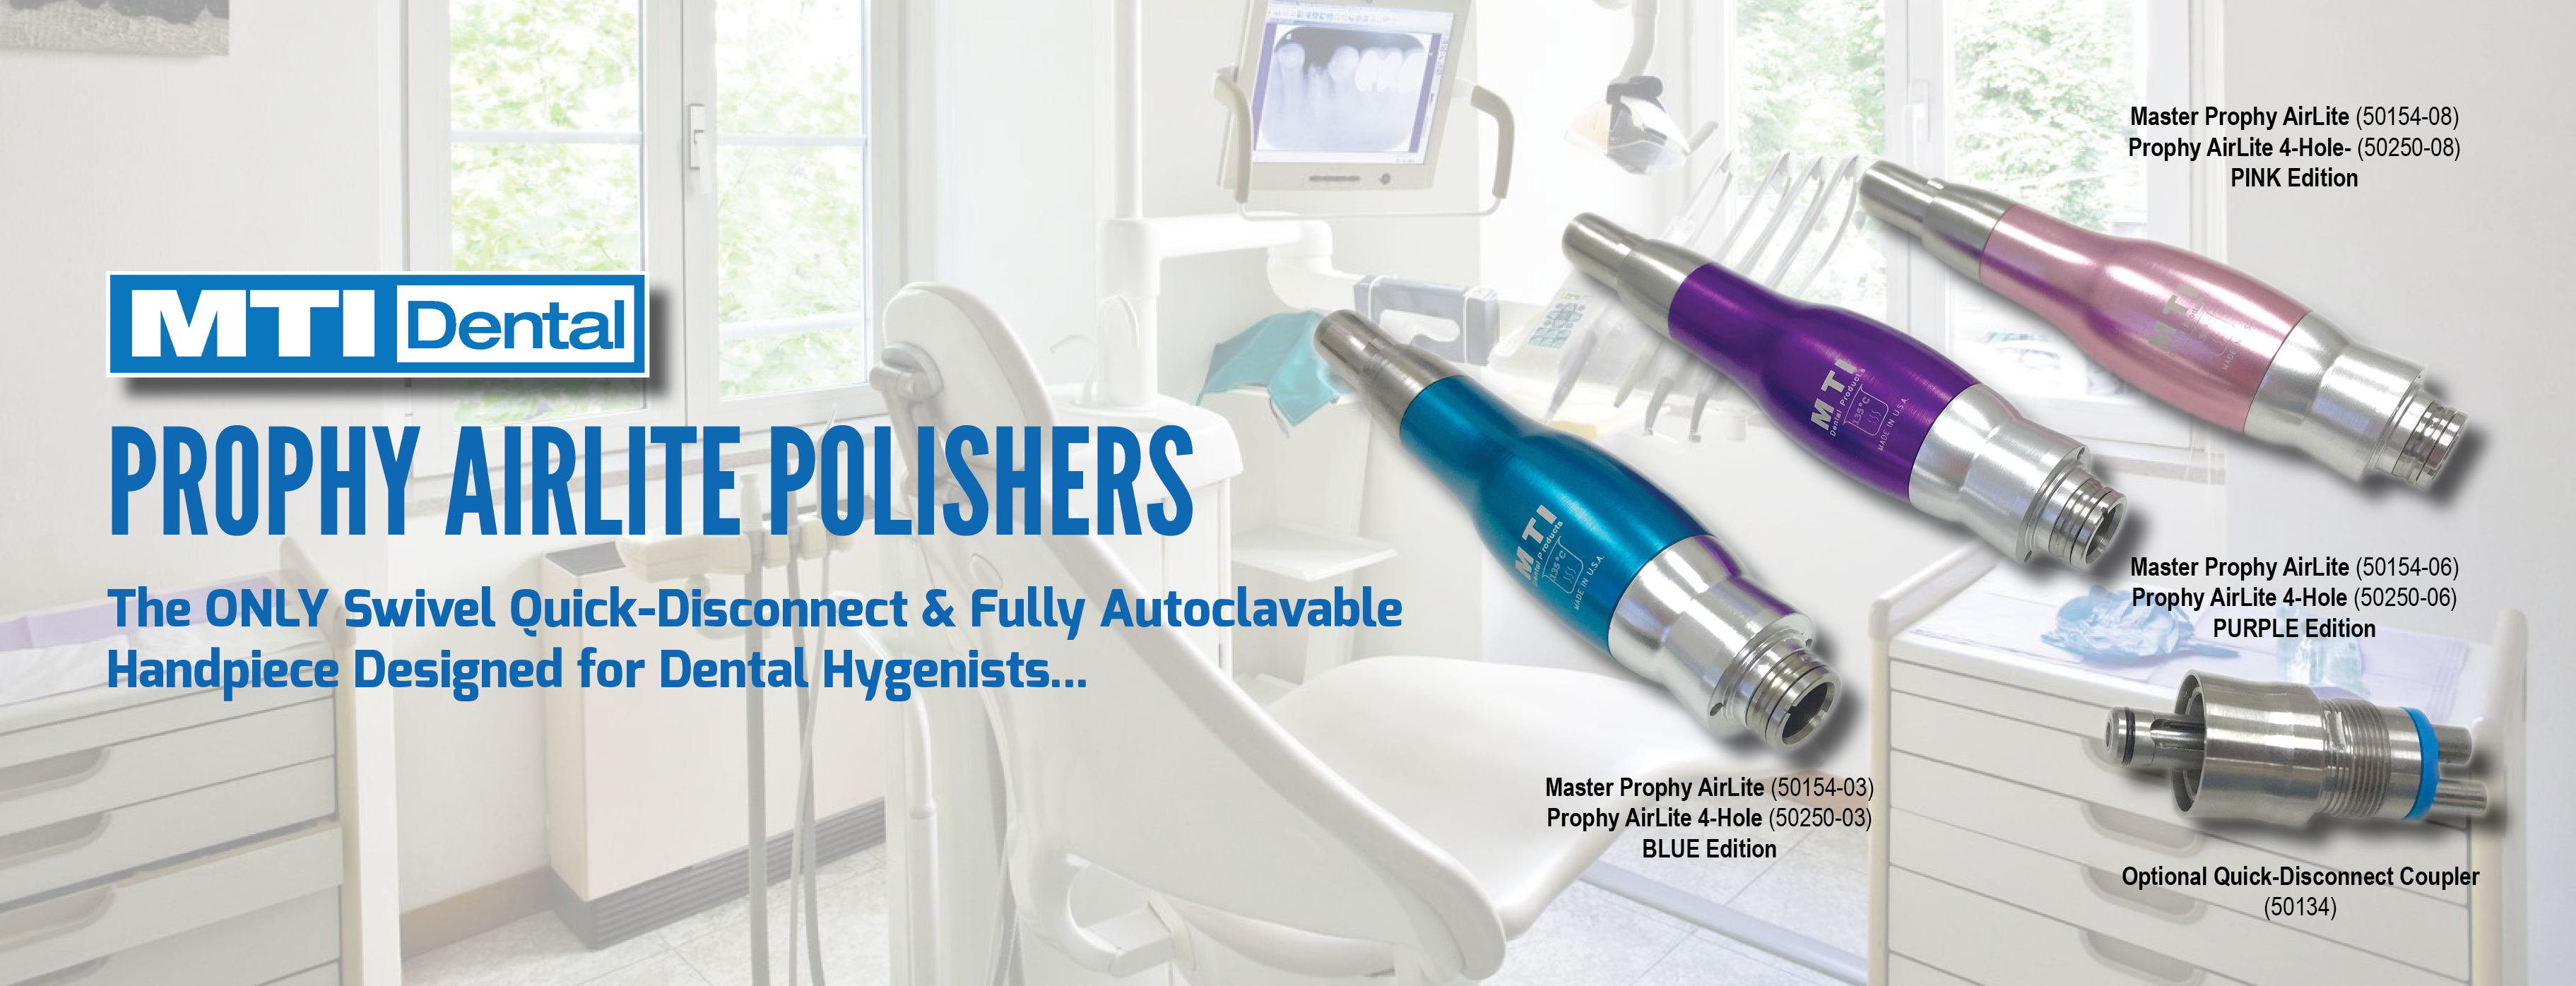 Prophy AirLite and Master Prophy AirLite Polishers by MTI Dental